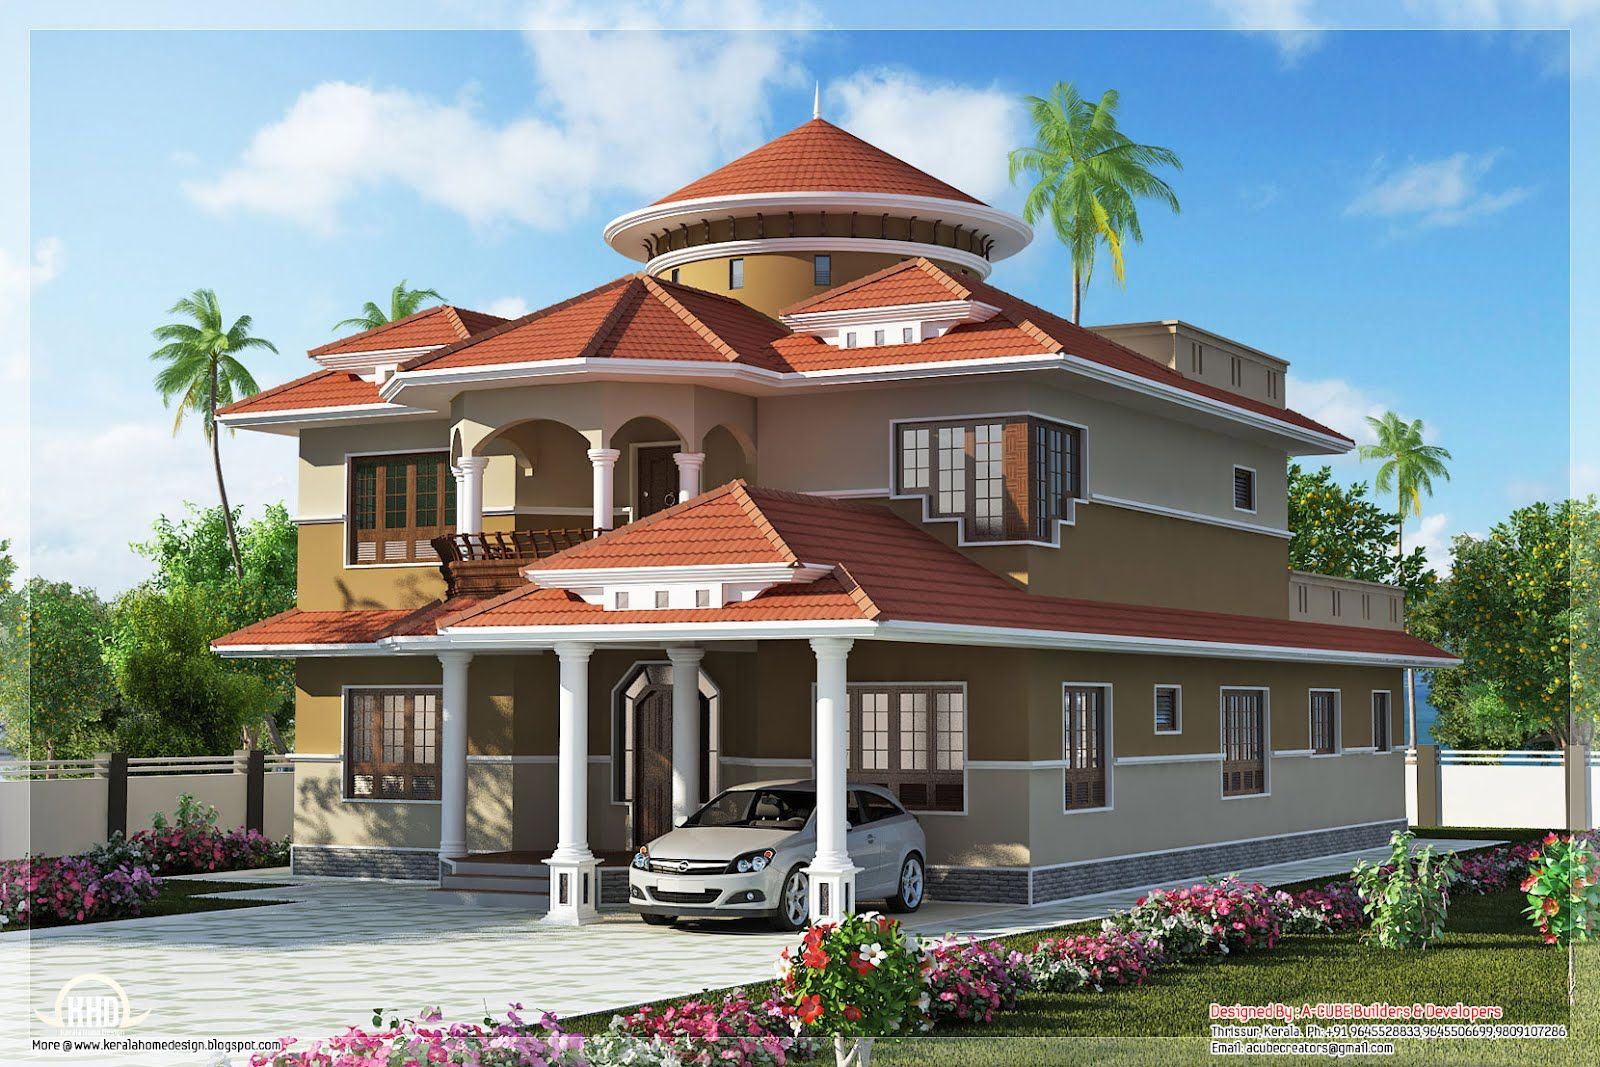 Dream Home Designs 4 Dream Home House Design 1600 X 1067